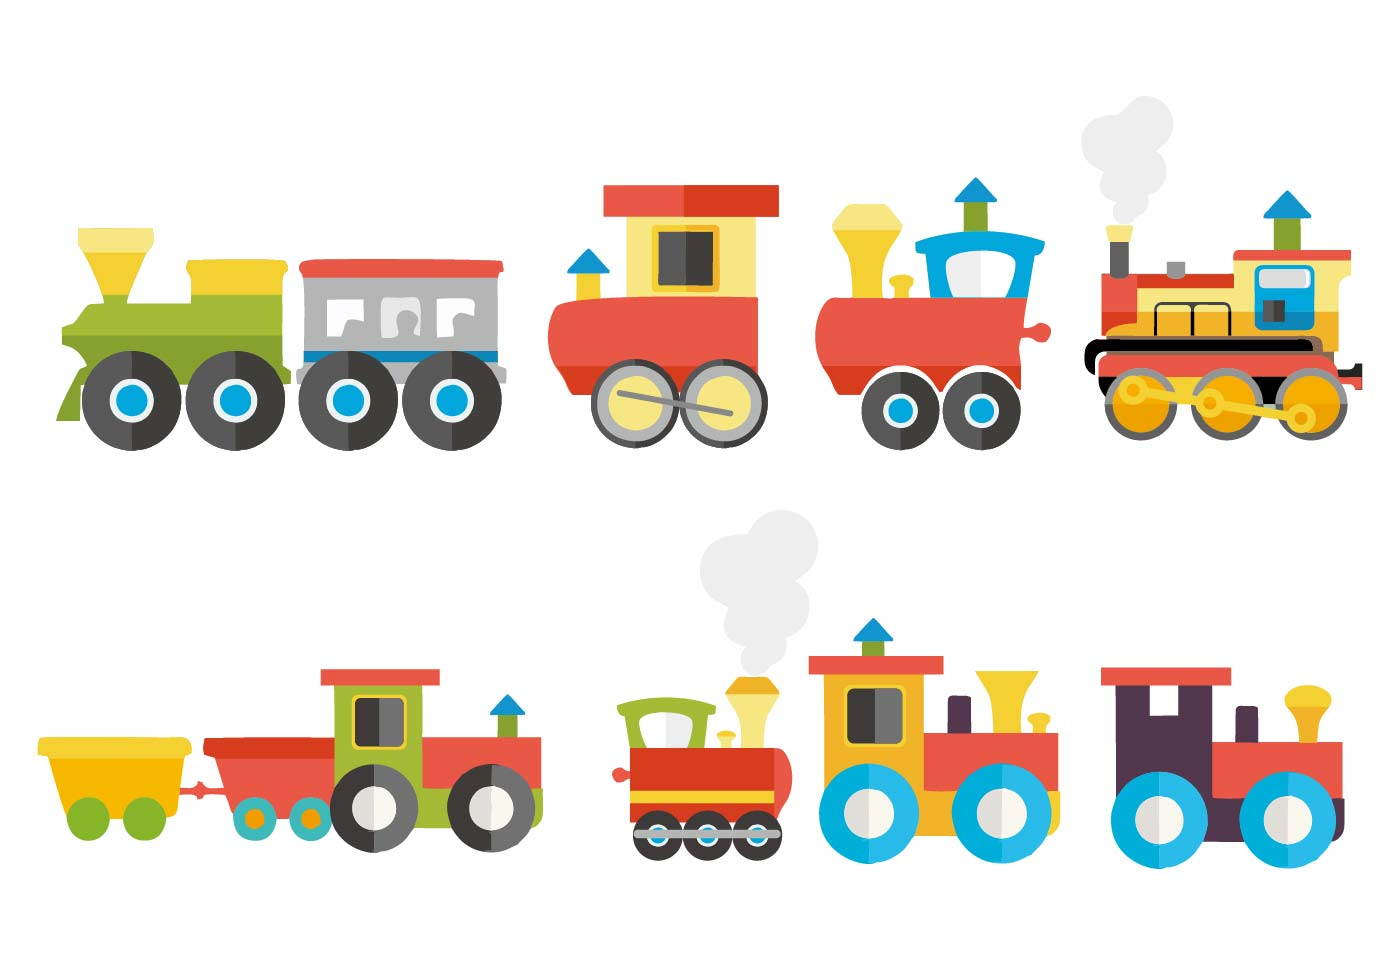 Bath Shower Seal Colorful Child Train Vector Download Free Vector Art